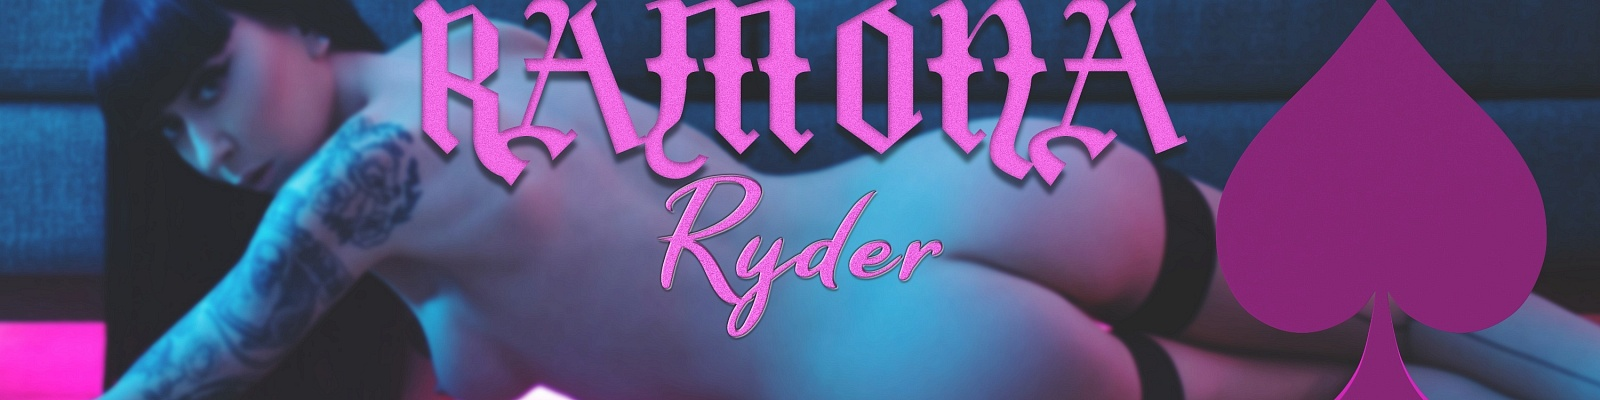 Mistress Ramona Ryder's Cover Photo